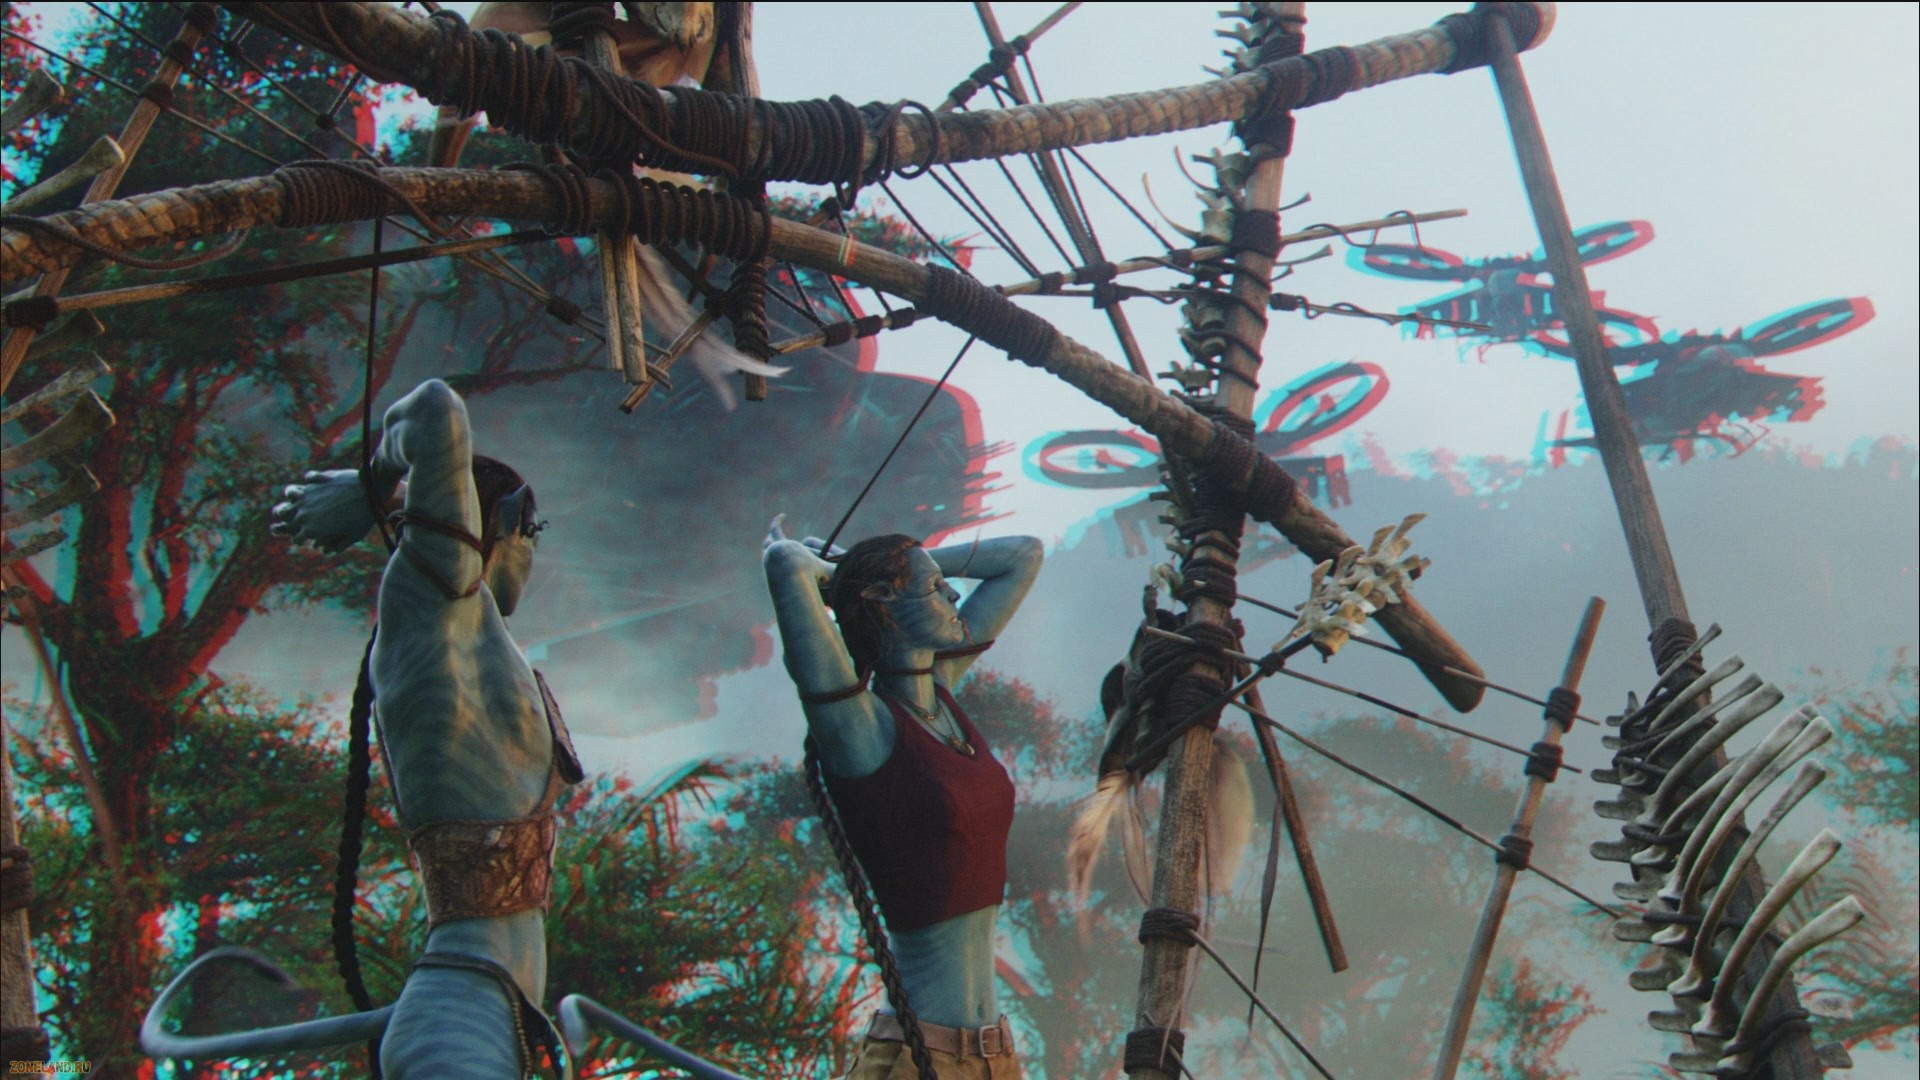 Hub avatar 3d bdrip 1080p anaglyph mkv 16 50 гб